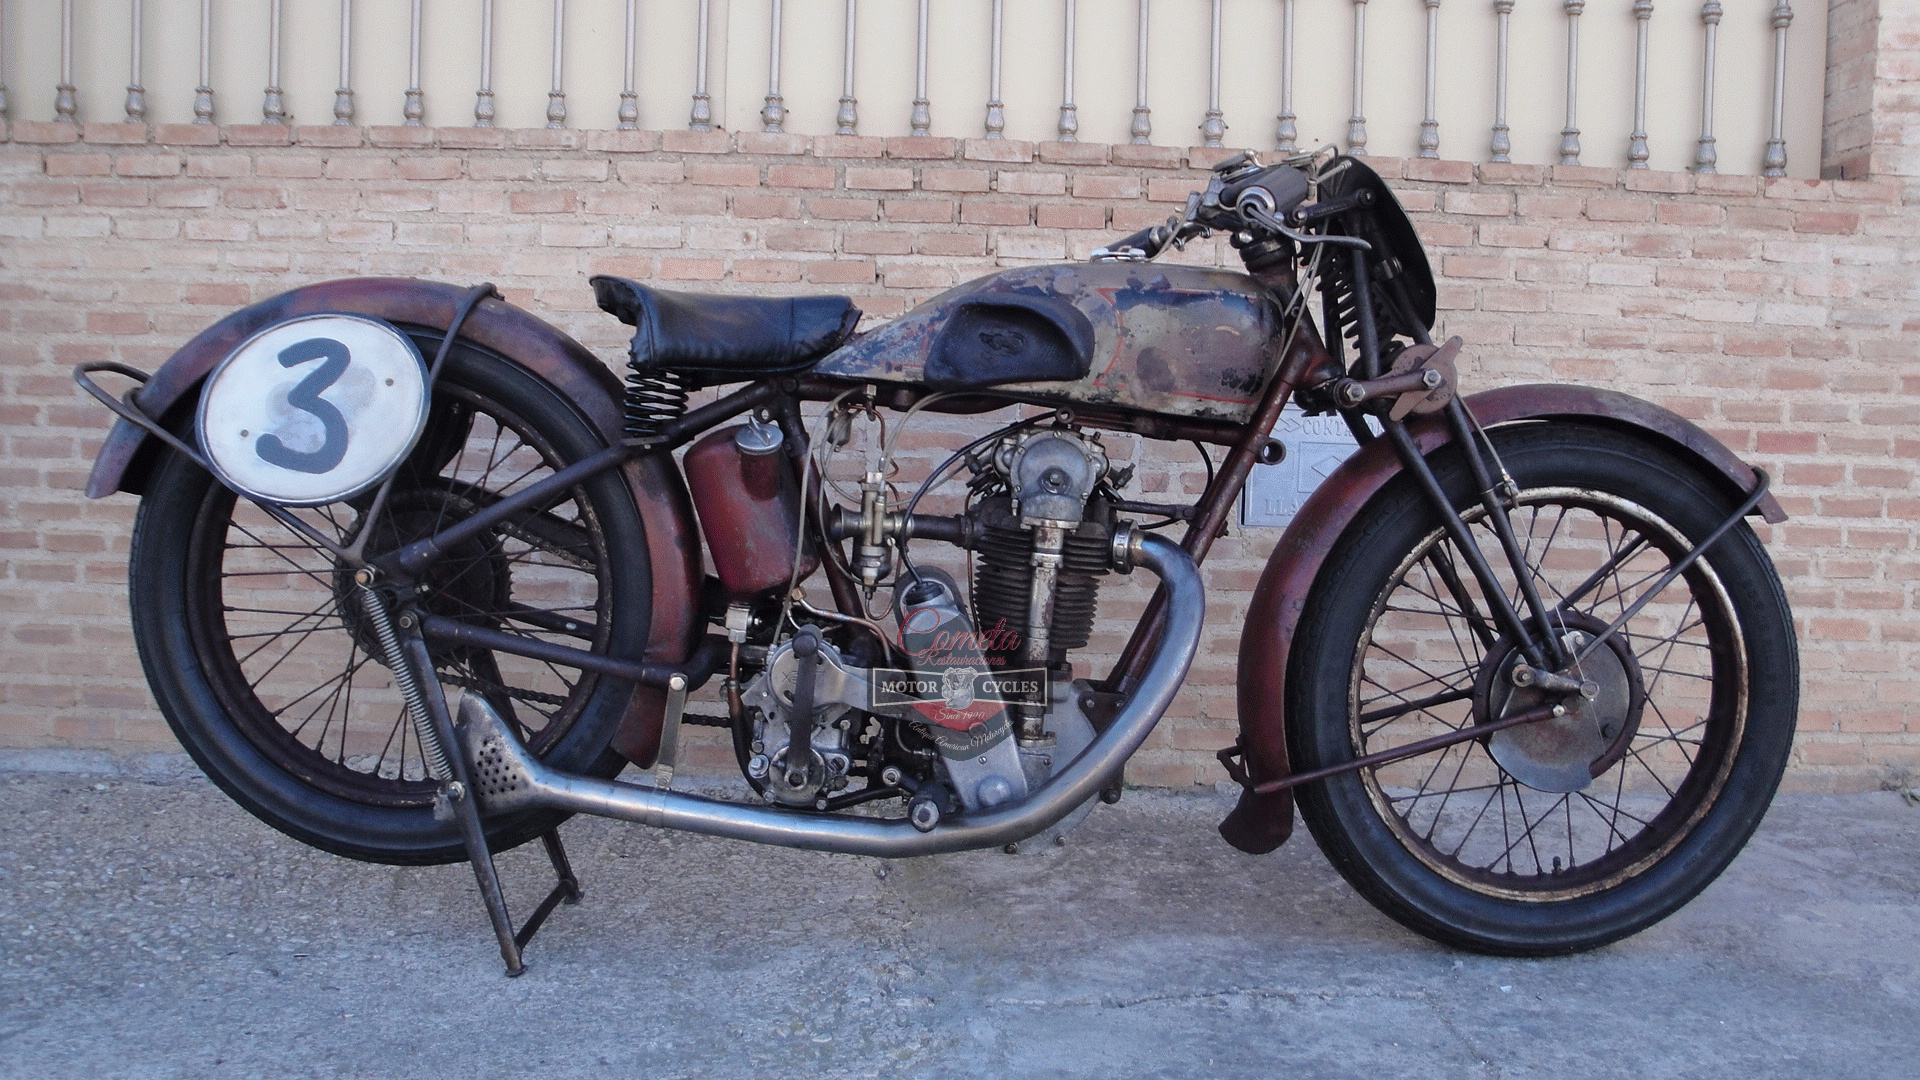 VELOCETTE KN SS 350cc OHC RACER AÑO 1929 !